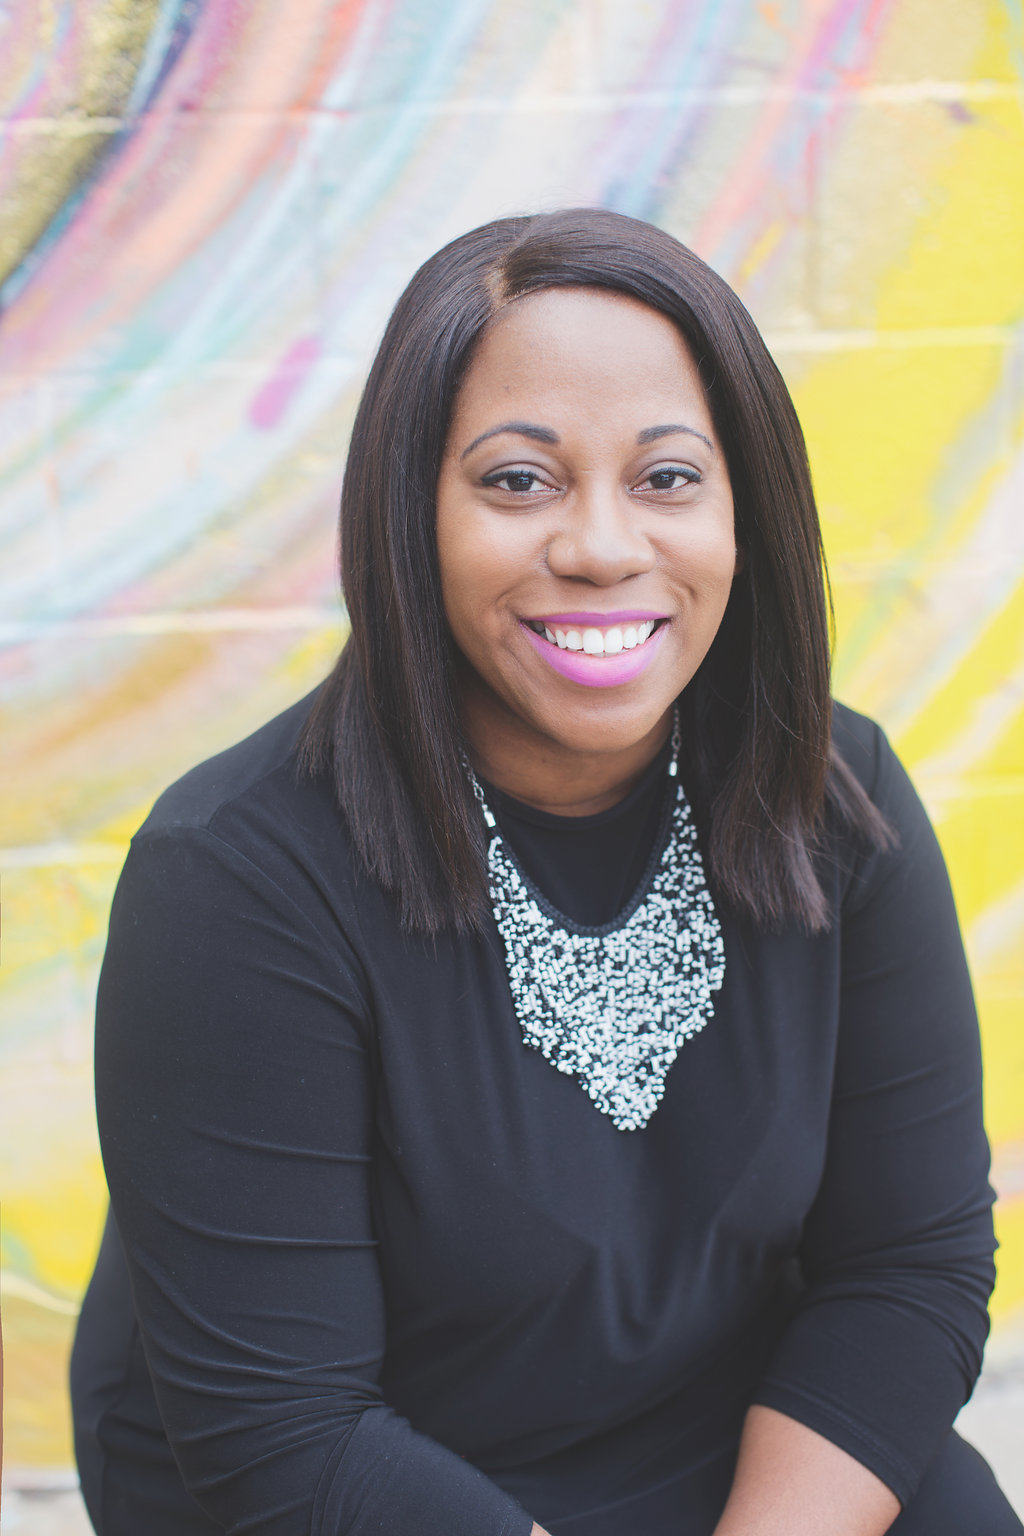 Hi, I'm Tiffany - I help people get great jobs, and organizations retain great people. As a career & style coach, I demystify the job search process for new, emerging, and seasoned professionals in transition. I've effectively coached hundreds of professionals to accomplish long and short-term goals by creating strategic action plans. I'm passionate about helping others develop themselves professionally and identify how to both cultivate their unique skills and interests, and add value to professional relationships, organizations, and the world.As a professional development consultant, I help mission-driven organizations train, develop, and retain high potential people and teams.Connect with me to explore ways you might reinvigorate professional development for your best people and teams.Certifications: CliftonStrengths / StrengthsFinder, Strong Interest Inventory, Myers-Briggs Type Indicator, NCDA Career Development Facilitator, and Diversity Educator. I received both my B.A. and M.A. from Wake Forest University. Go Deacs!I love working with highly motivated people who not only want to get the job done, but are invested in unlocking the power & edge of their unique talents to add value to organizations and the world.Let's grab (virtual) coffee and connect!www.linkedin.com/tiffanywaddelltate